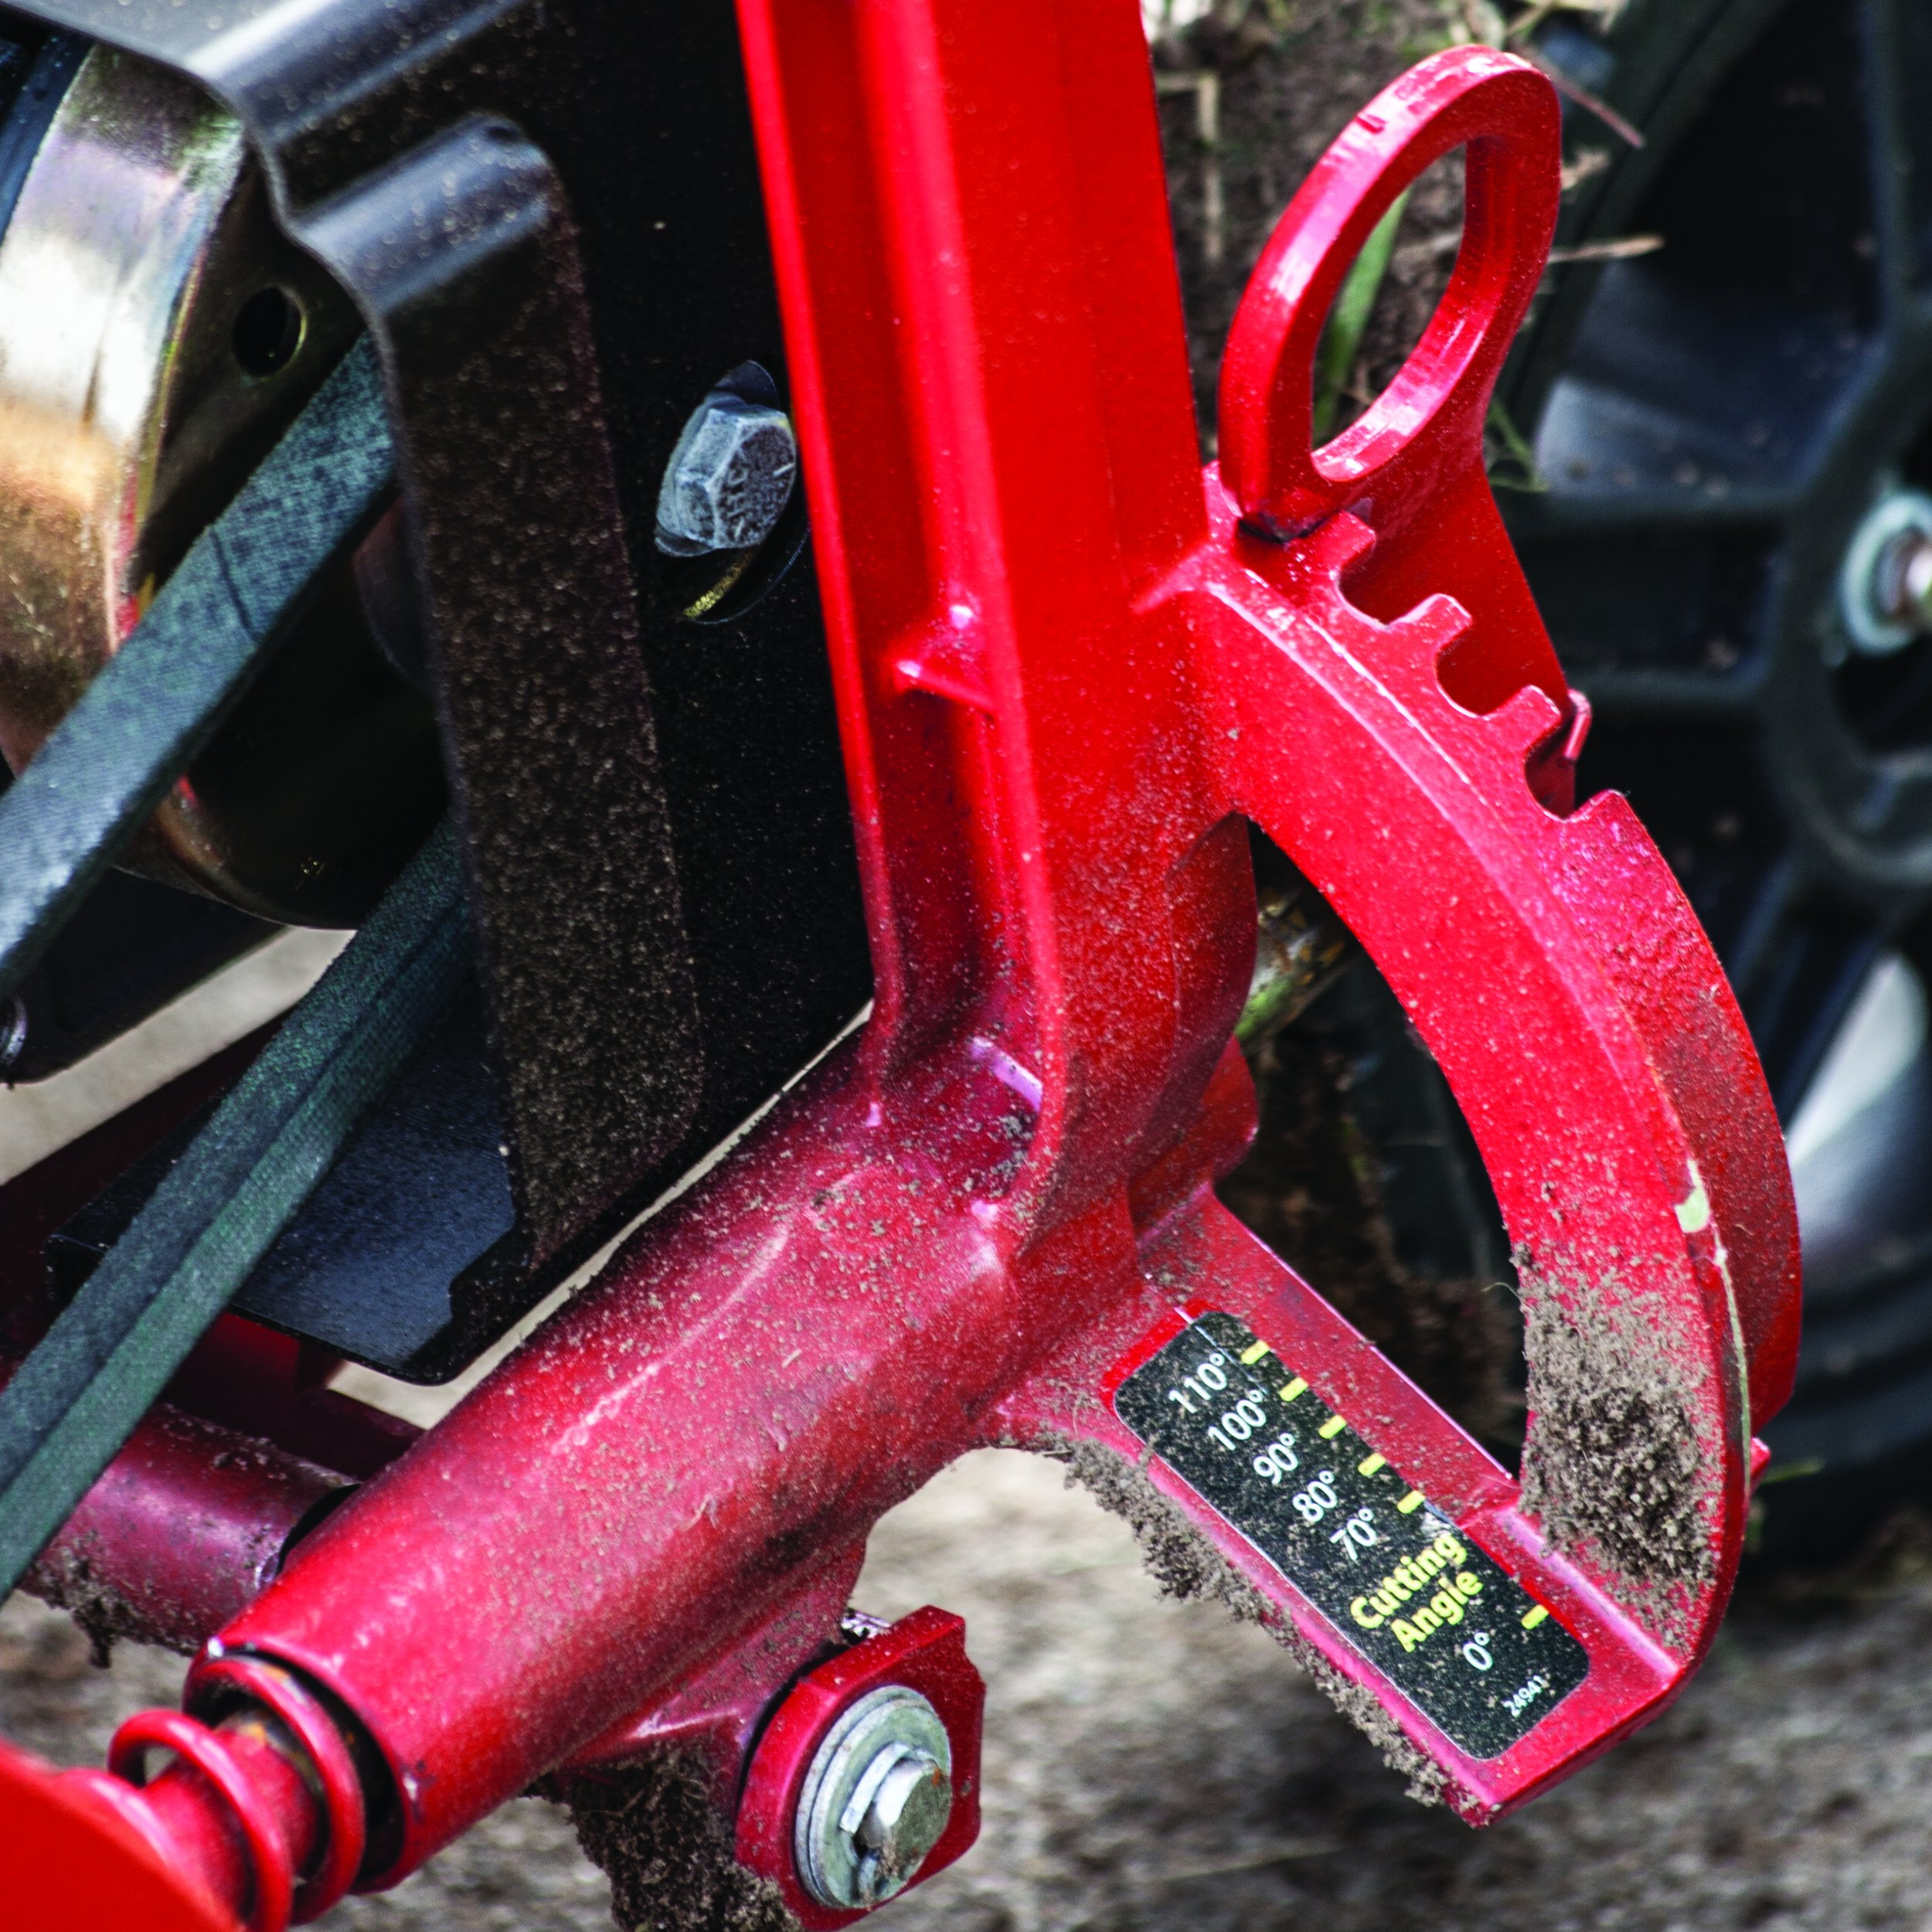 Earthquake 24000 Curb Wheel & Lightweight Trimming Tool Power Edger by Earthquake (Image #4)